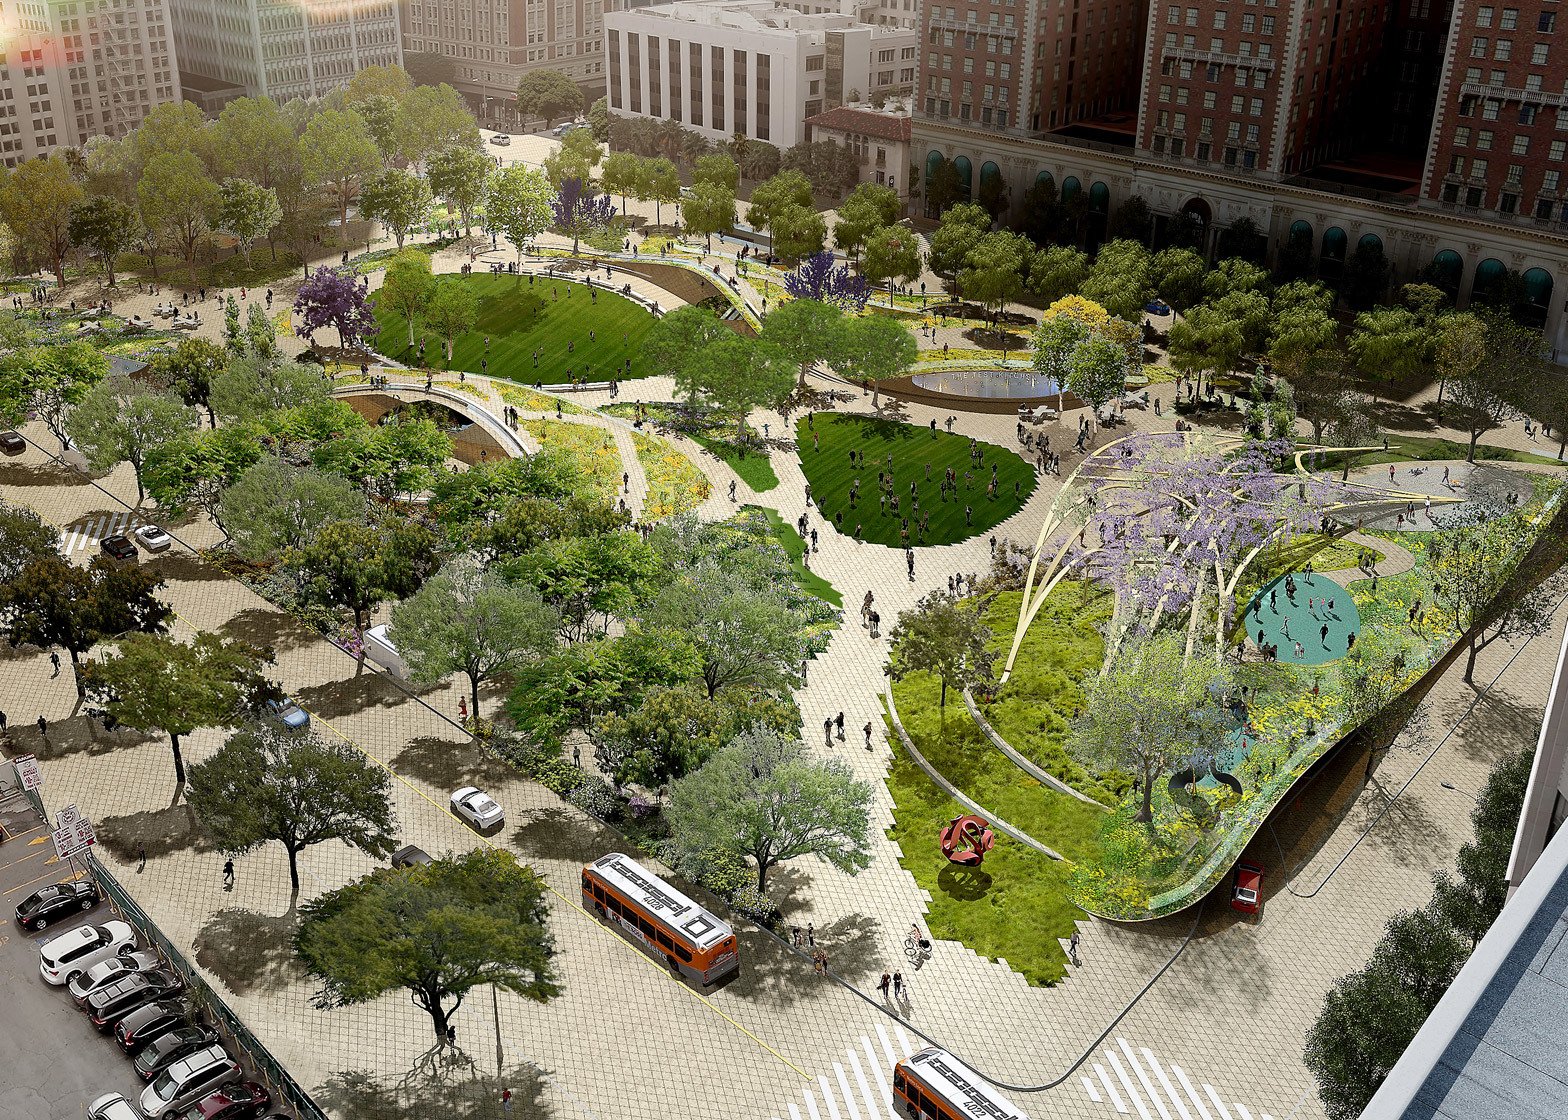 Urban parks have the double benefit of making cities more livable while also reducing the volume of storm water handled bycombined sewer systems.